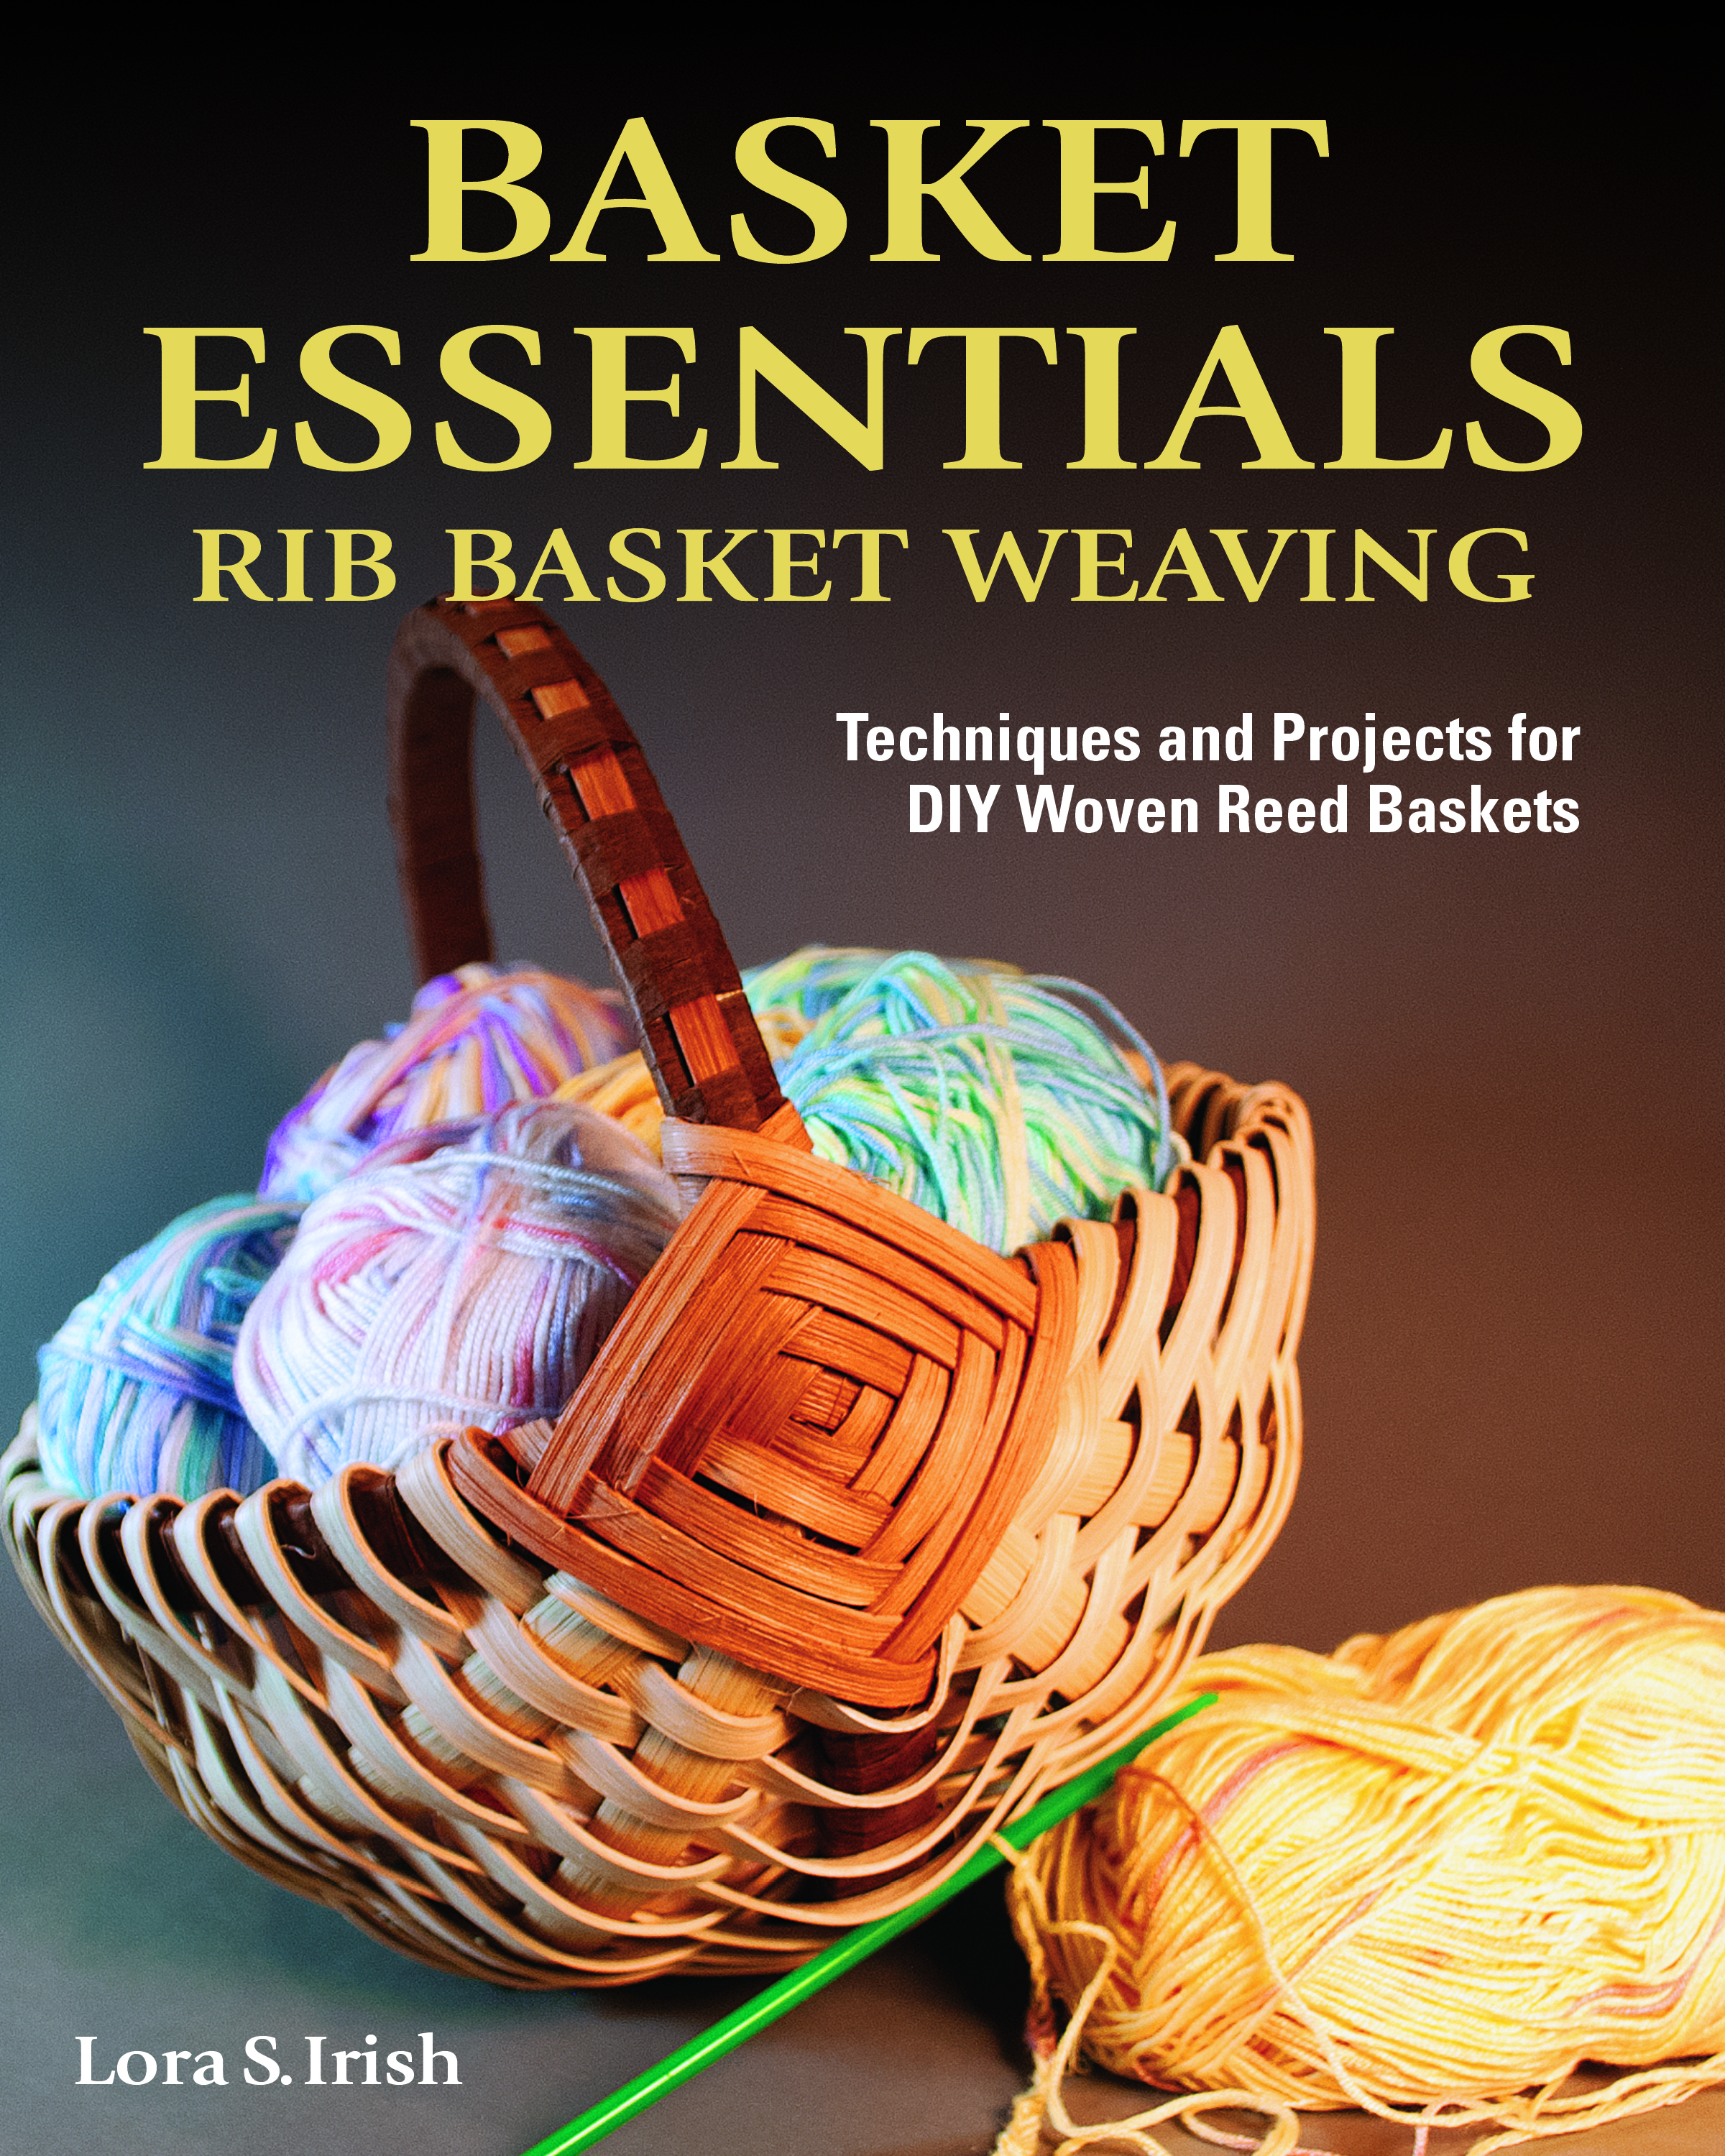 Basketry & Chair Caning 2 Murphy Chip Carving Knife Basket Weaving Tool Carving Handles Ribs Rims Reed An Indispensable Sovereign Remedy For Home